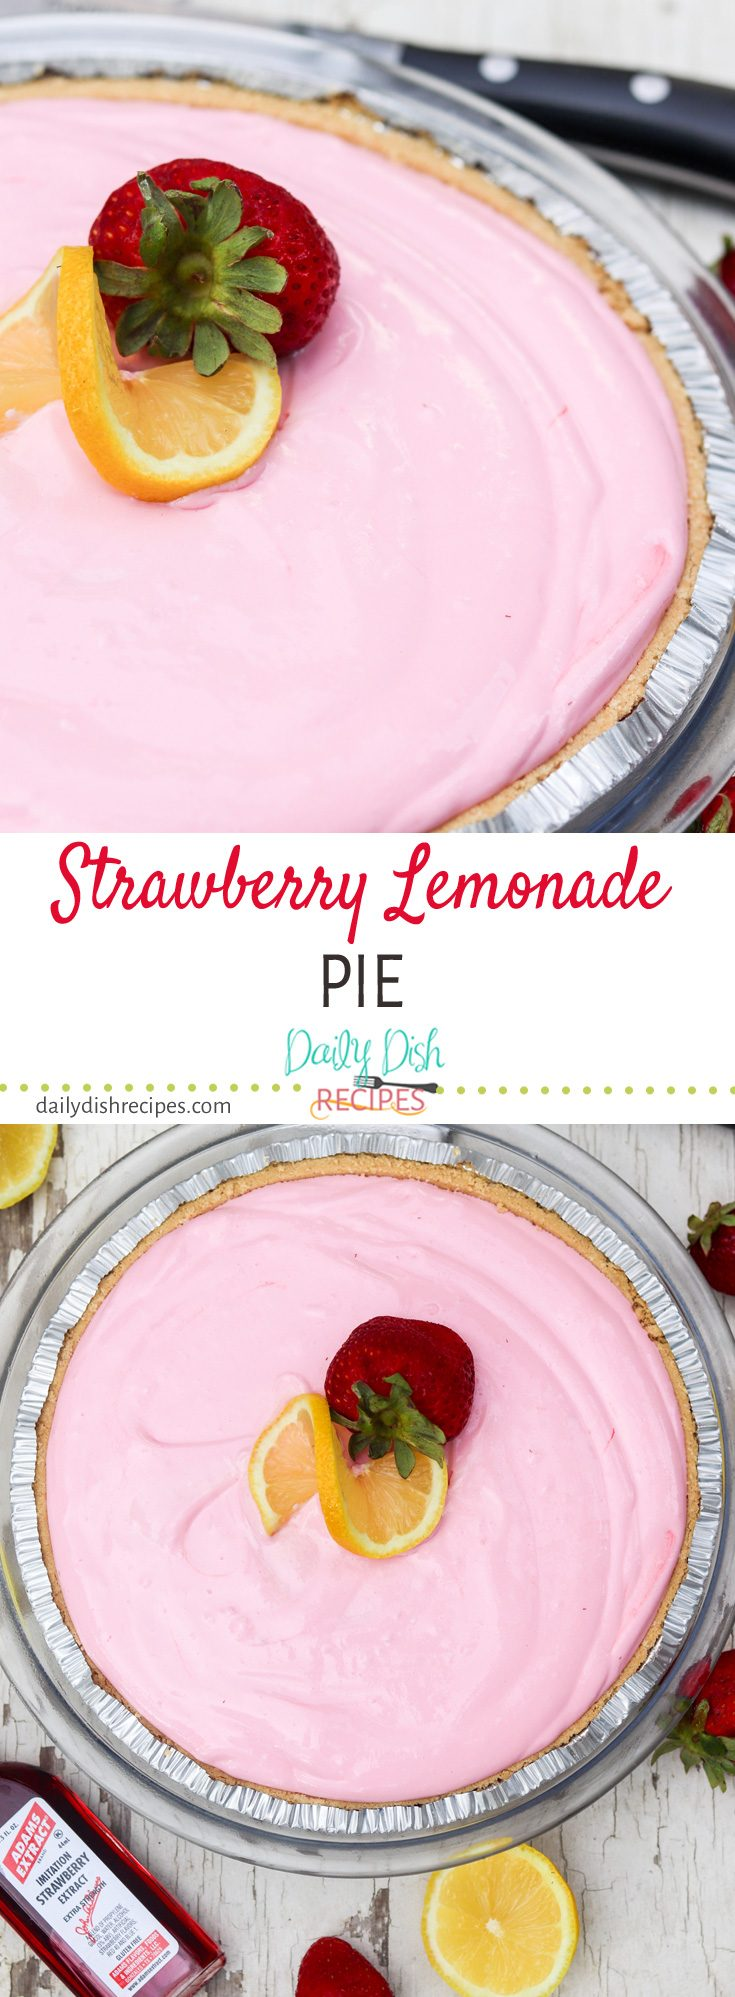 A cool, refreshing slice of Strawberry Lemonade Pie is the perfect ending to any summer meal. Tart and Sweet, smooth and creamy and so incredibly delicious!